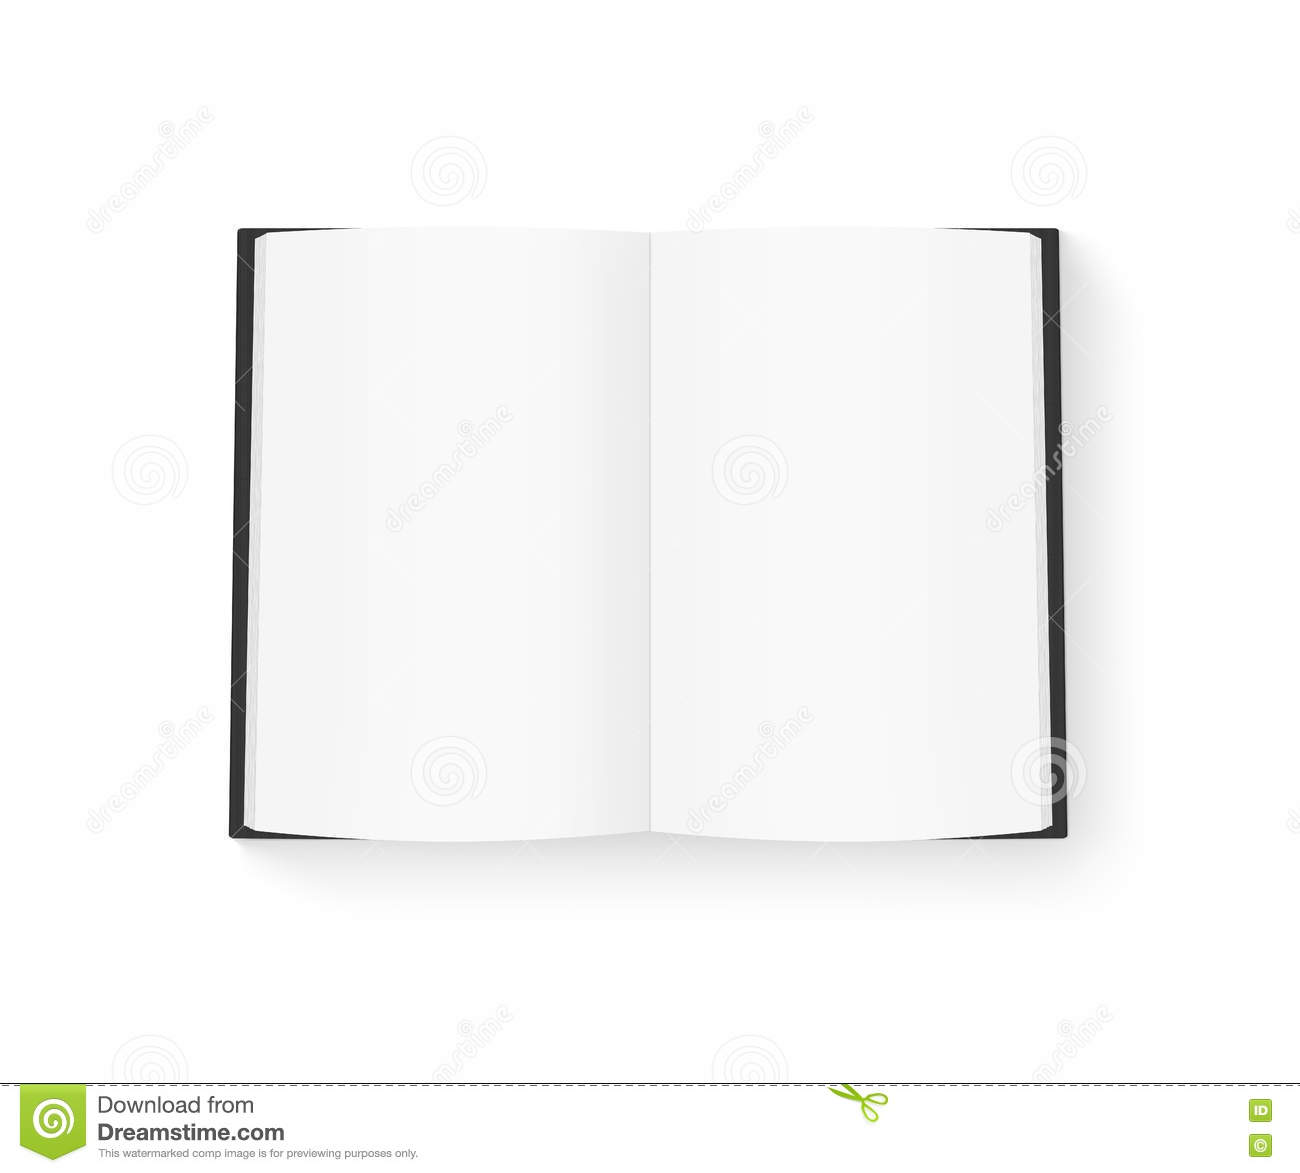 Open Book Cover Template : Open blank book mock up isolated on white black cover